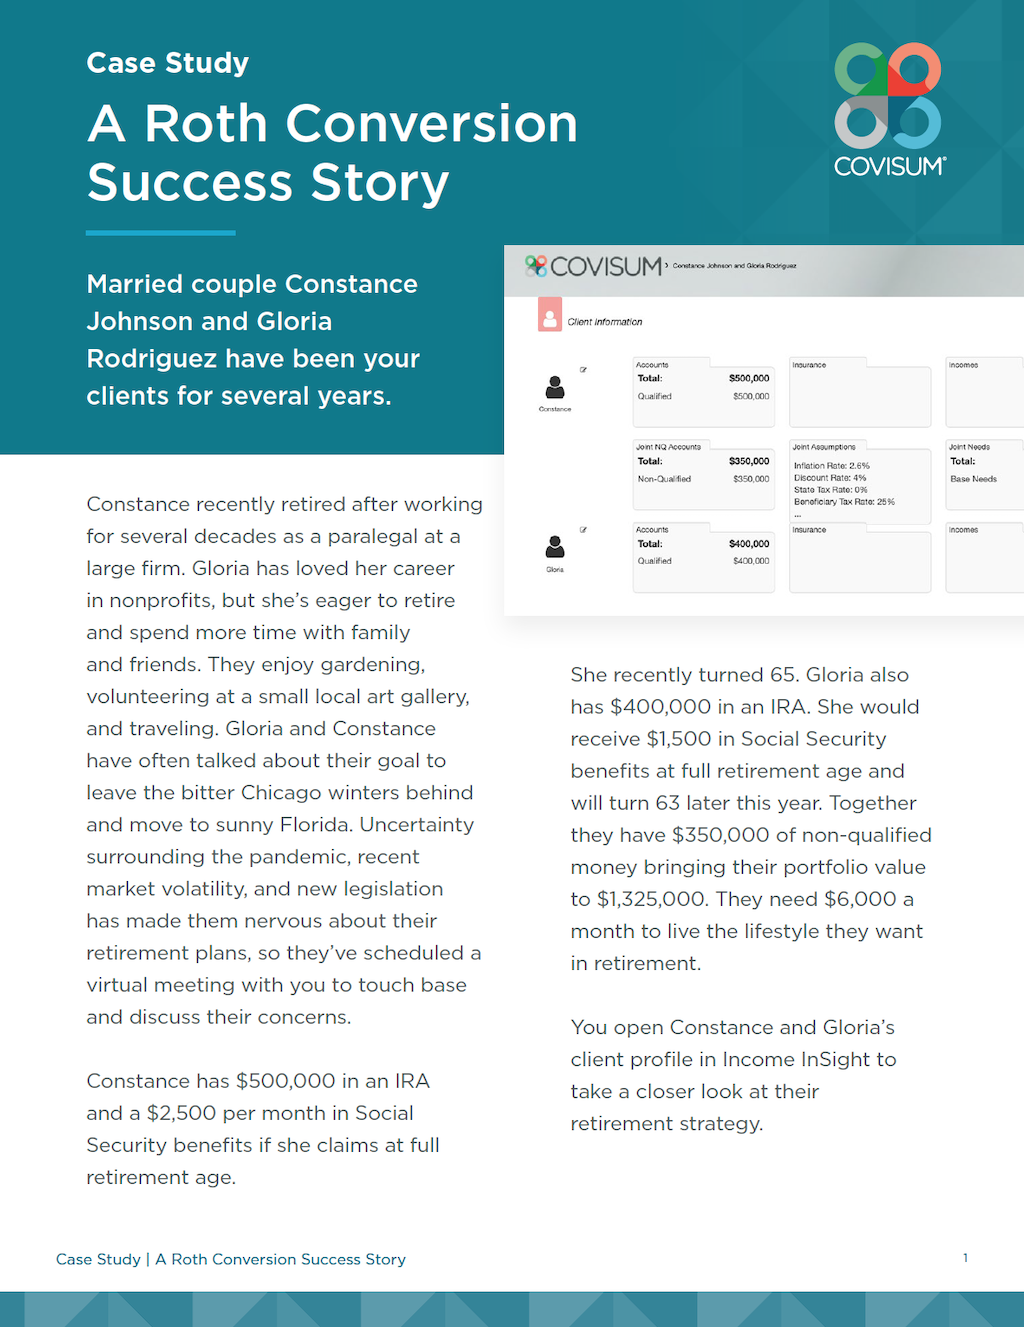 Case Study: A Roth Conversion Success Story